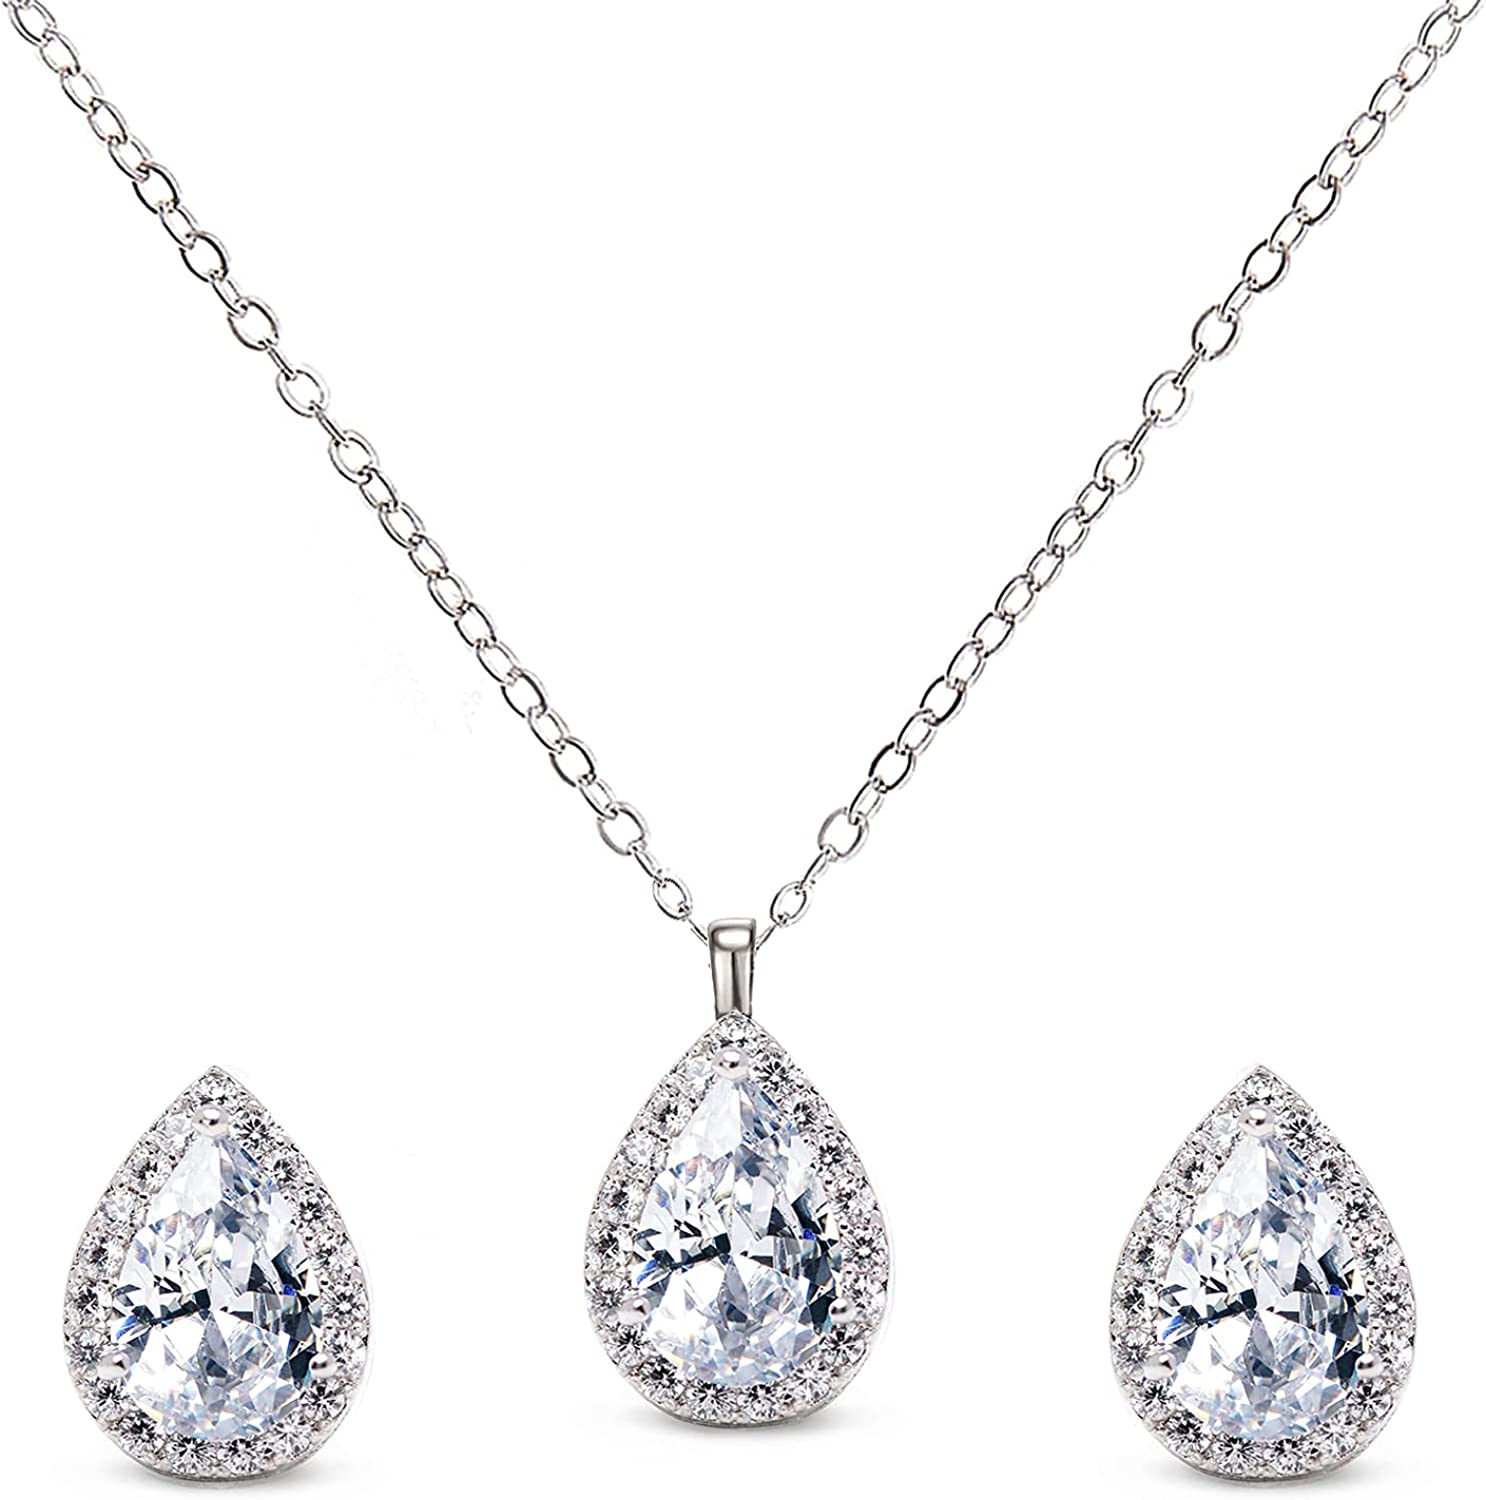 SWEETV Teardrop Wedding Jewelry Sets for Brides Bridesmaids, Cubic Zirconia Bridal Necklace Set, Teardrop Pendant Necklace Earrings Sets for Women Prom Jewelry Gifts